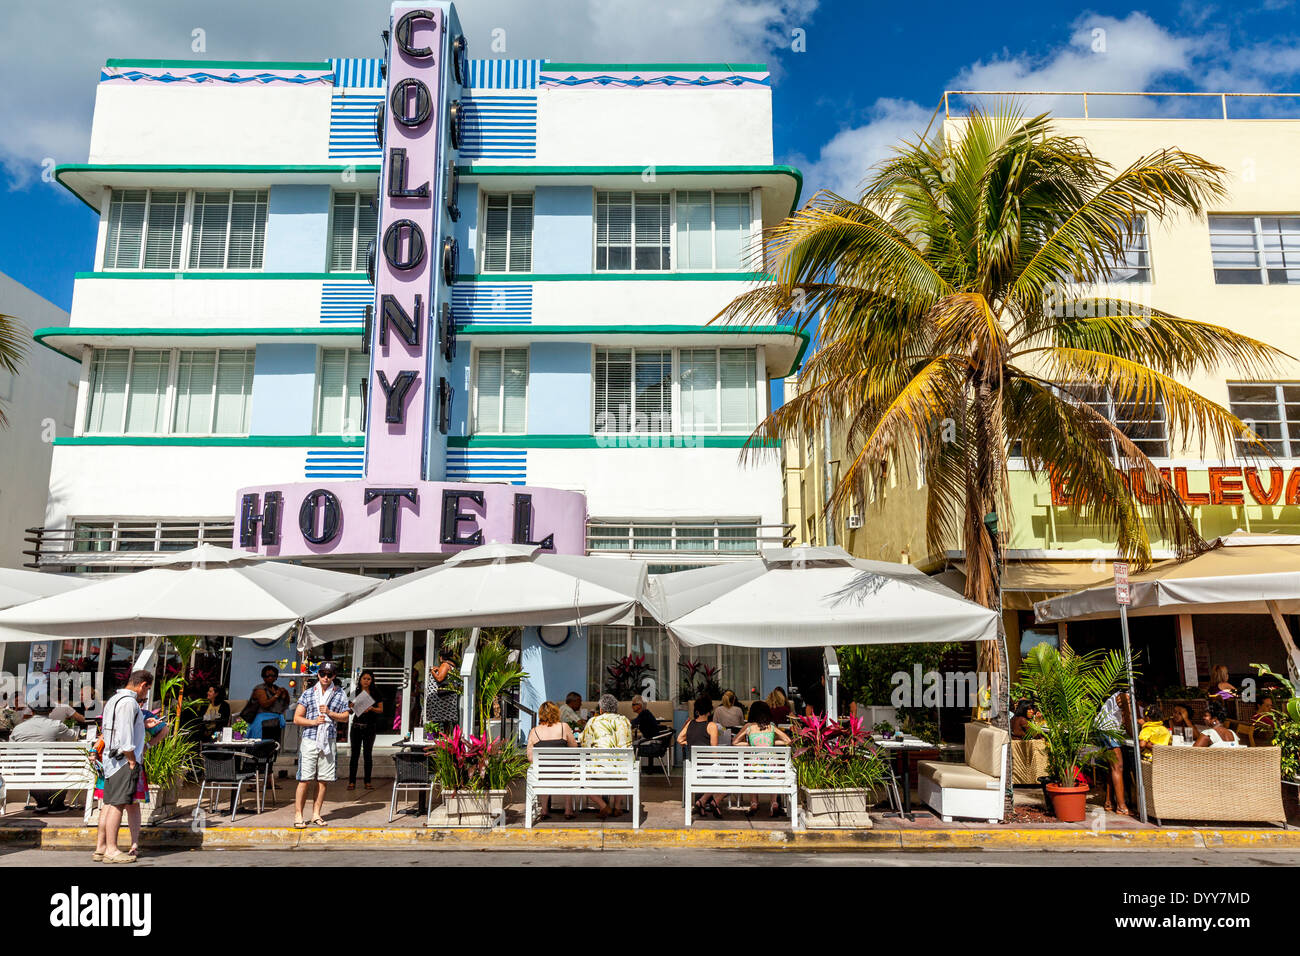 Cafe/Restaurant at The Colony Hotel, South Beach, Miami, Florida, USA - Stock Image